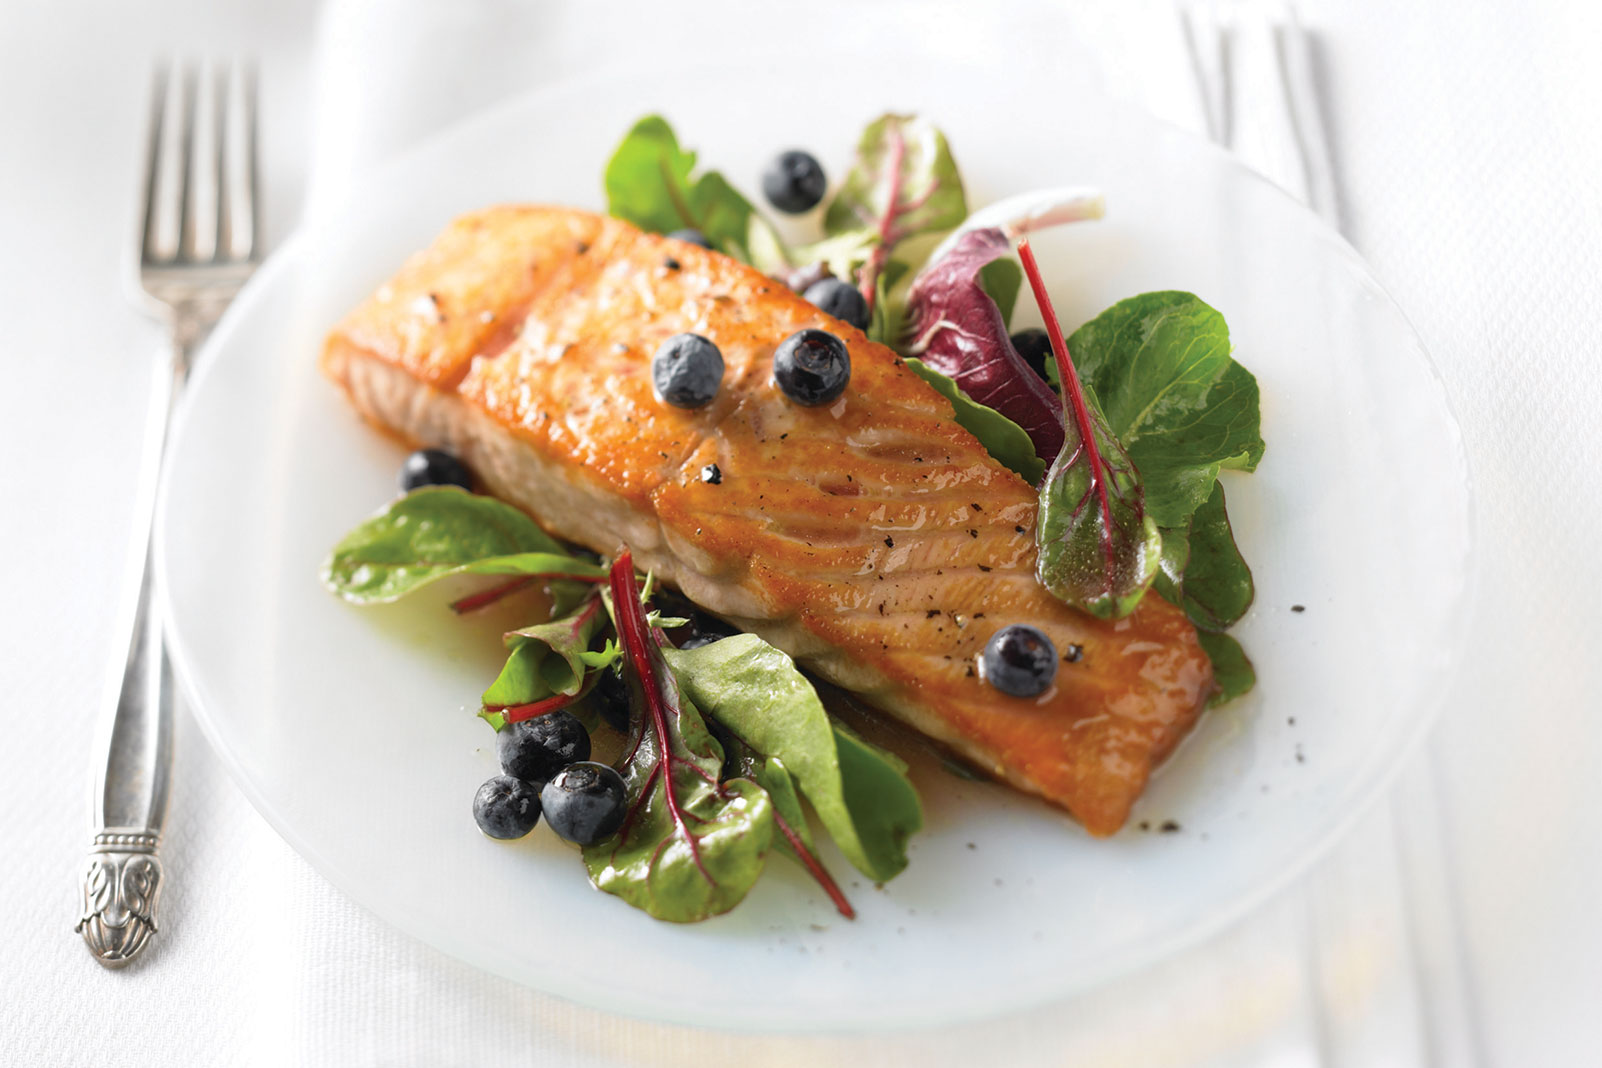 Salmon with Cranberry-Blueberry Vinaigrette and Baby Greens